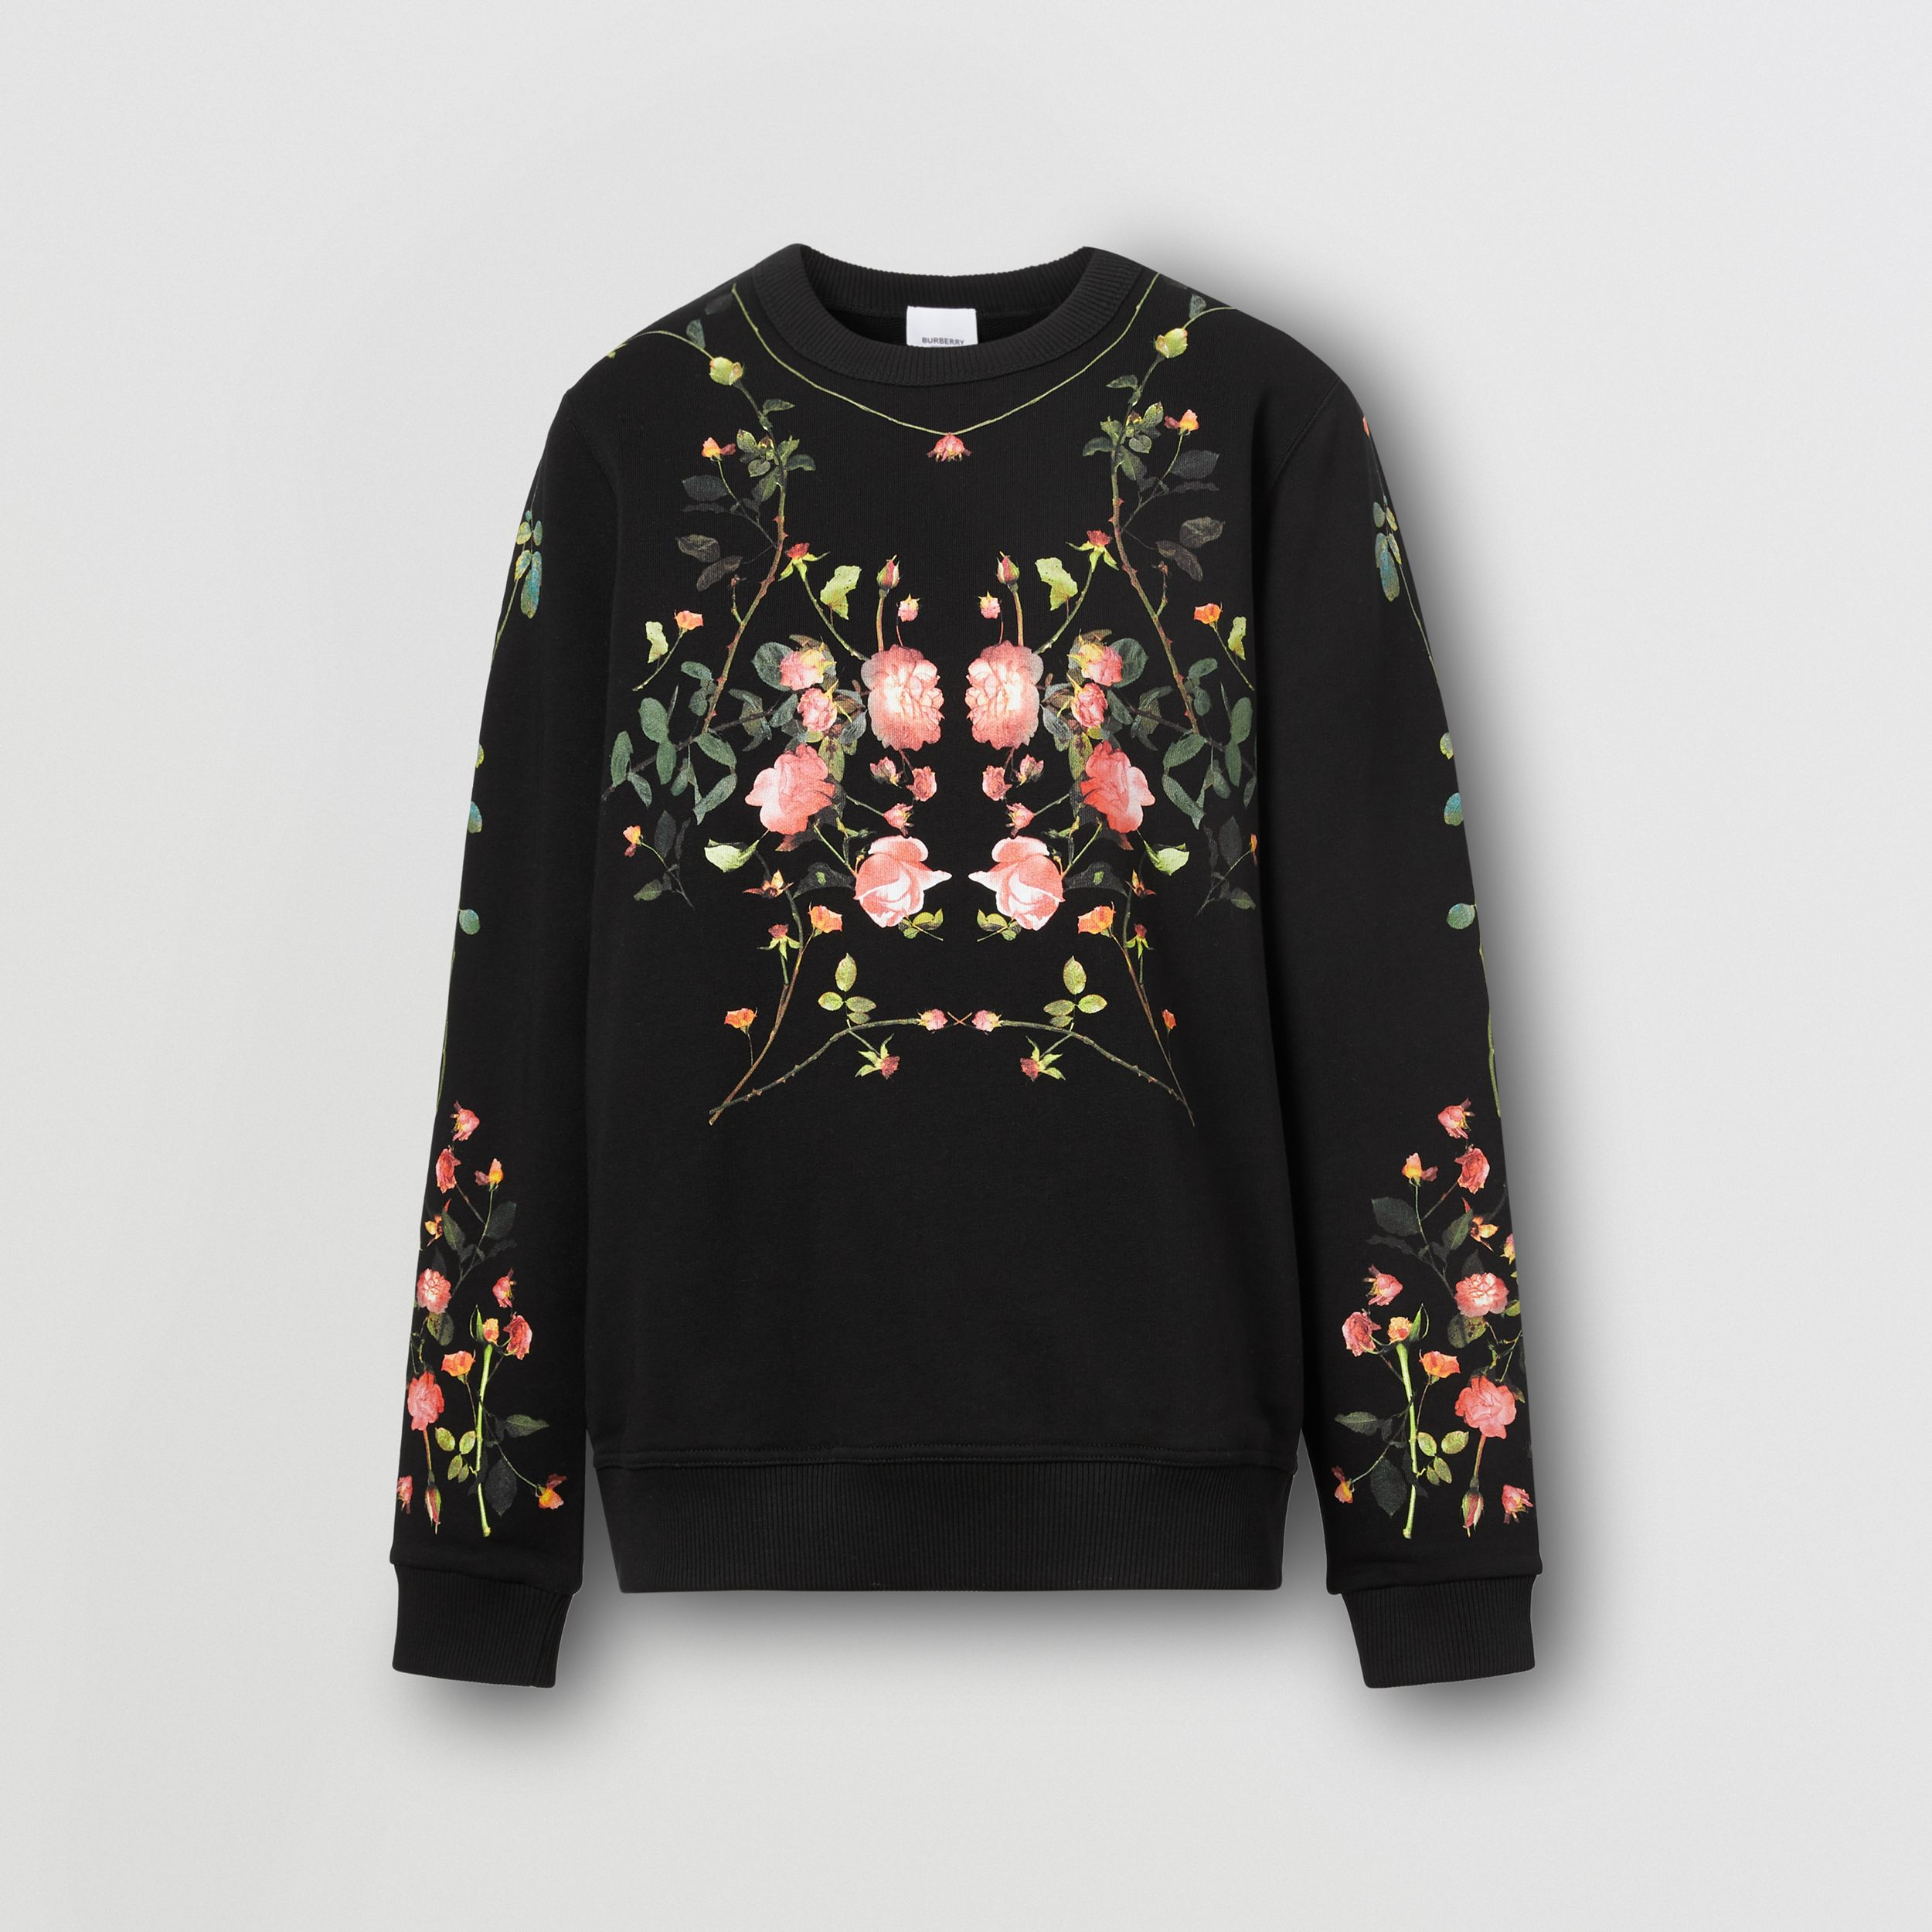 Rose Print Cotton Oversized Sweatshirt in Black - Women | Burberry Hong Kong S.A.R. - 4